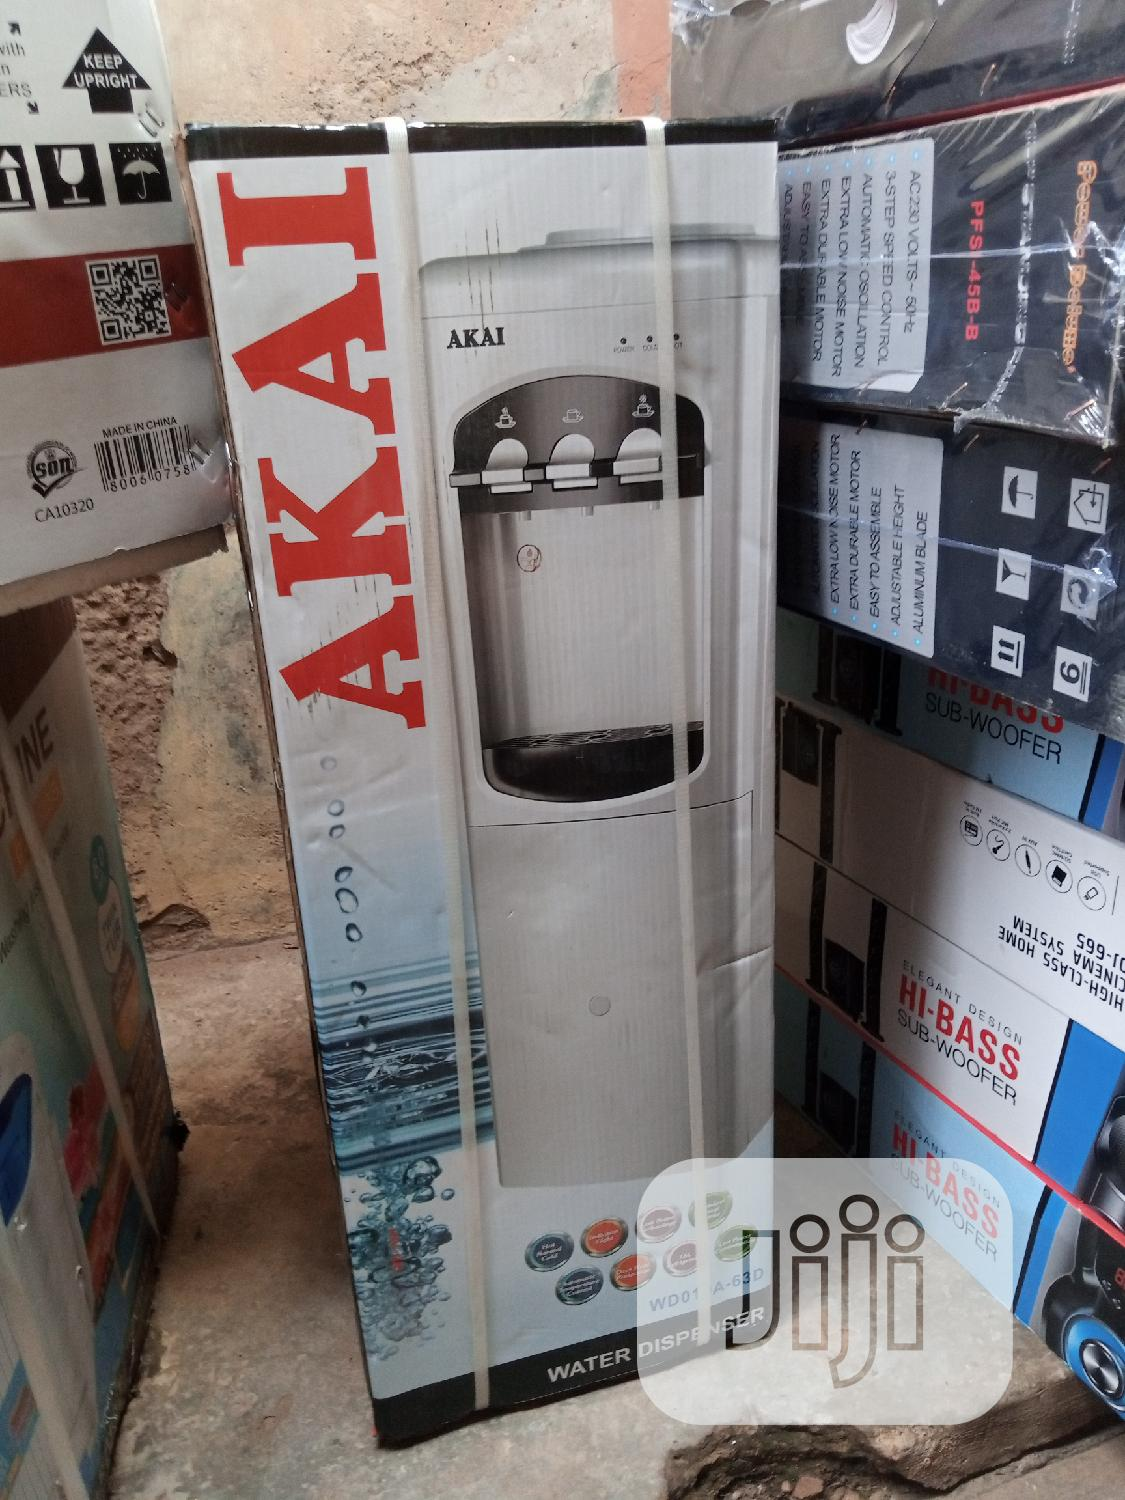 Akai Water Dispenser